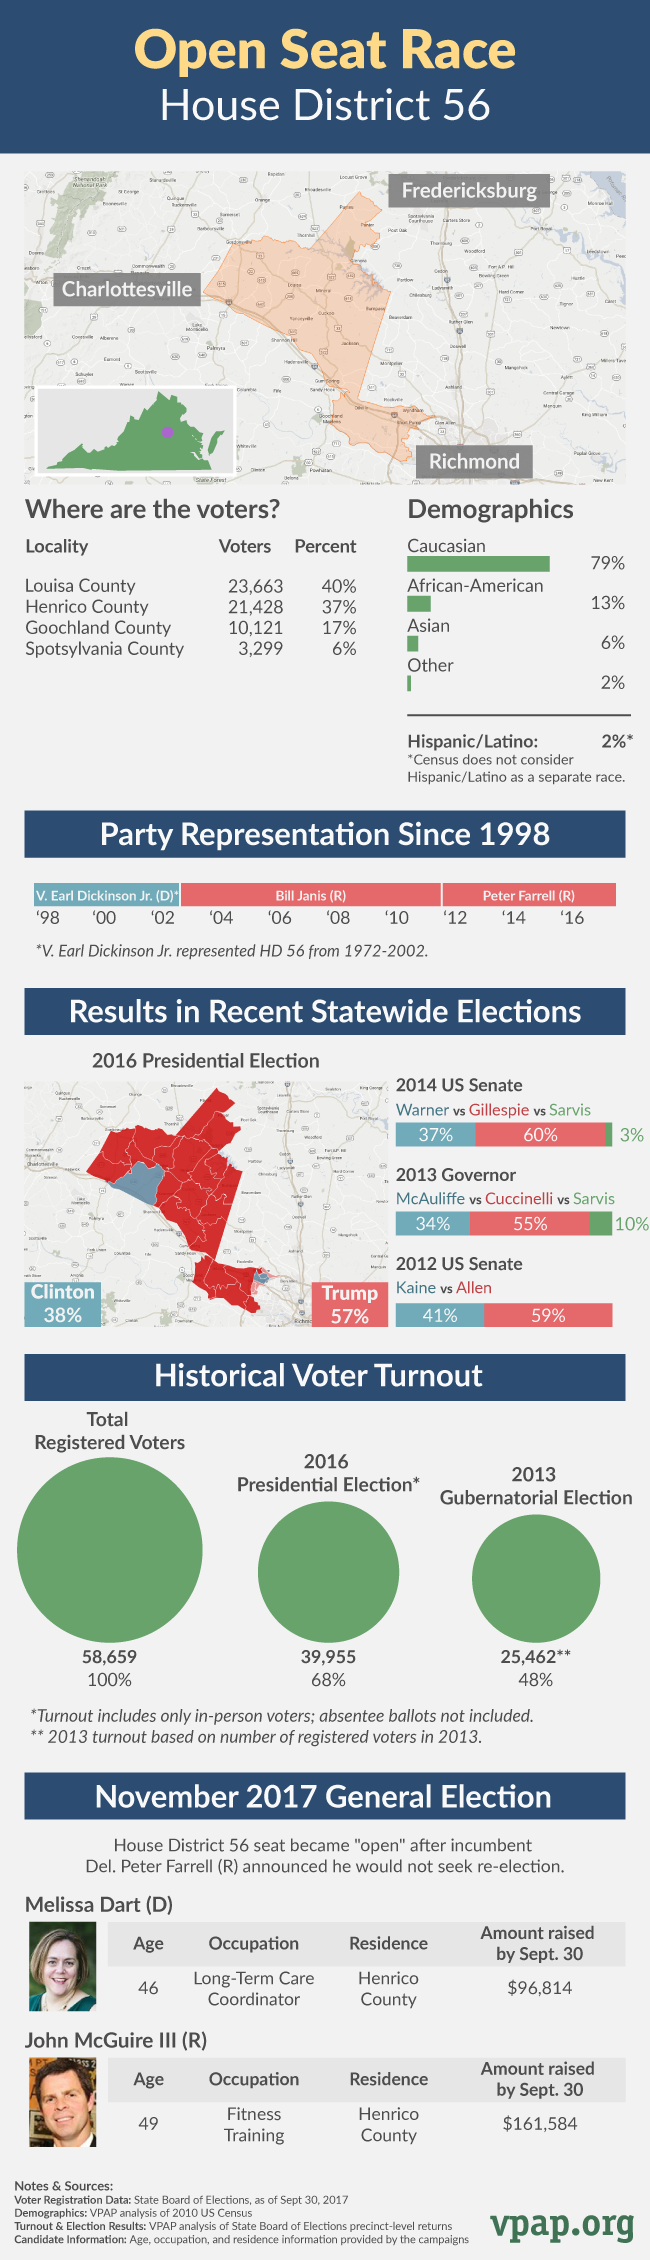 Open Seat Profile: House District 56